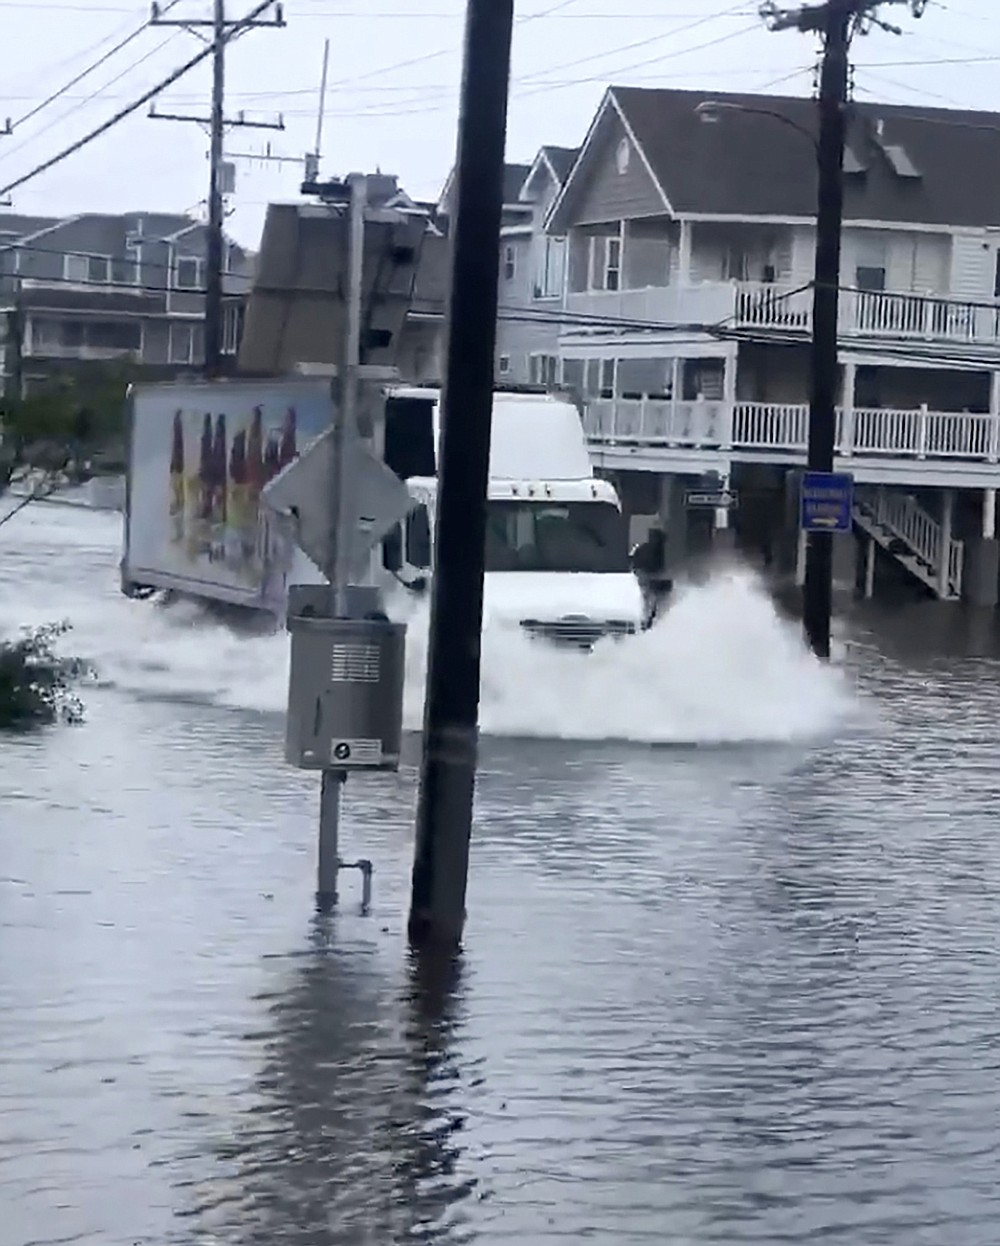 A tractor-trailer plows through standing water on a flooded Sea Isle City street, on New Jersey's Long Beach Island, Friday, July 10, 2020, in this photo made from video provided by Anthony Kutschera Jr. The Jersey shore was lashed Friday as the fast-moving Tropical Storm Fay churned north on a path expected to soak the New York City region. (Anthony Kutschera Jr. via AP)